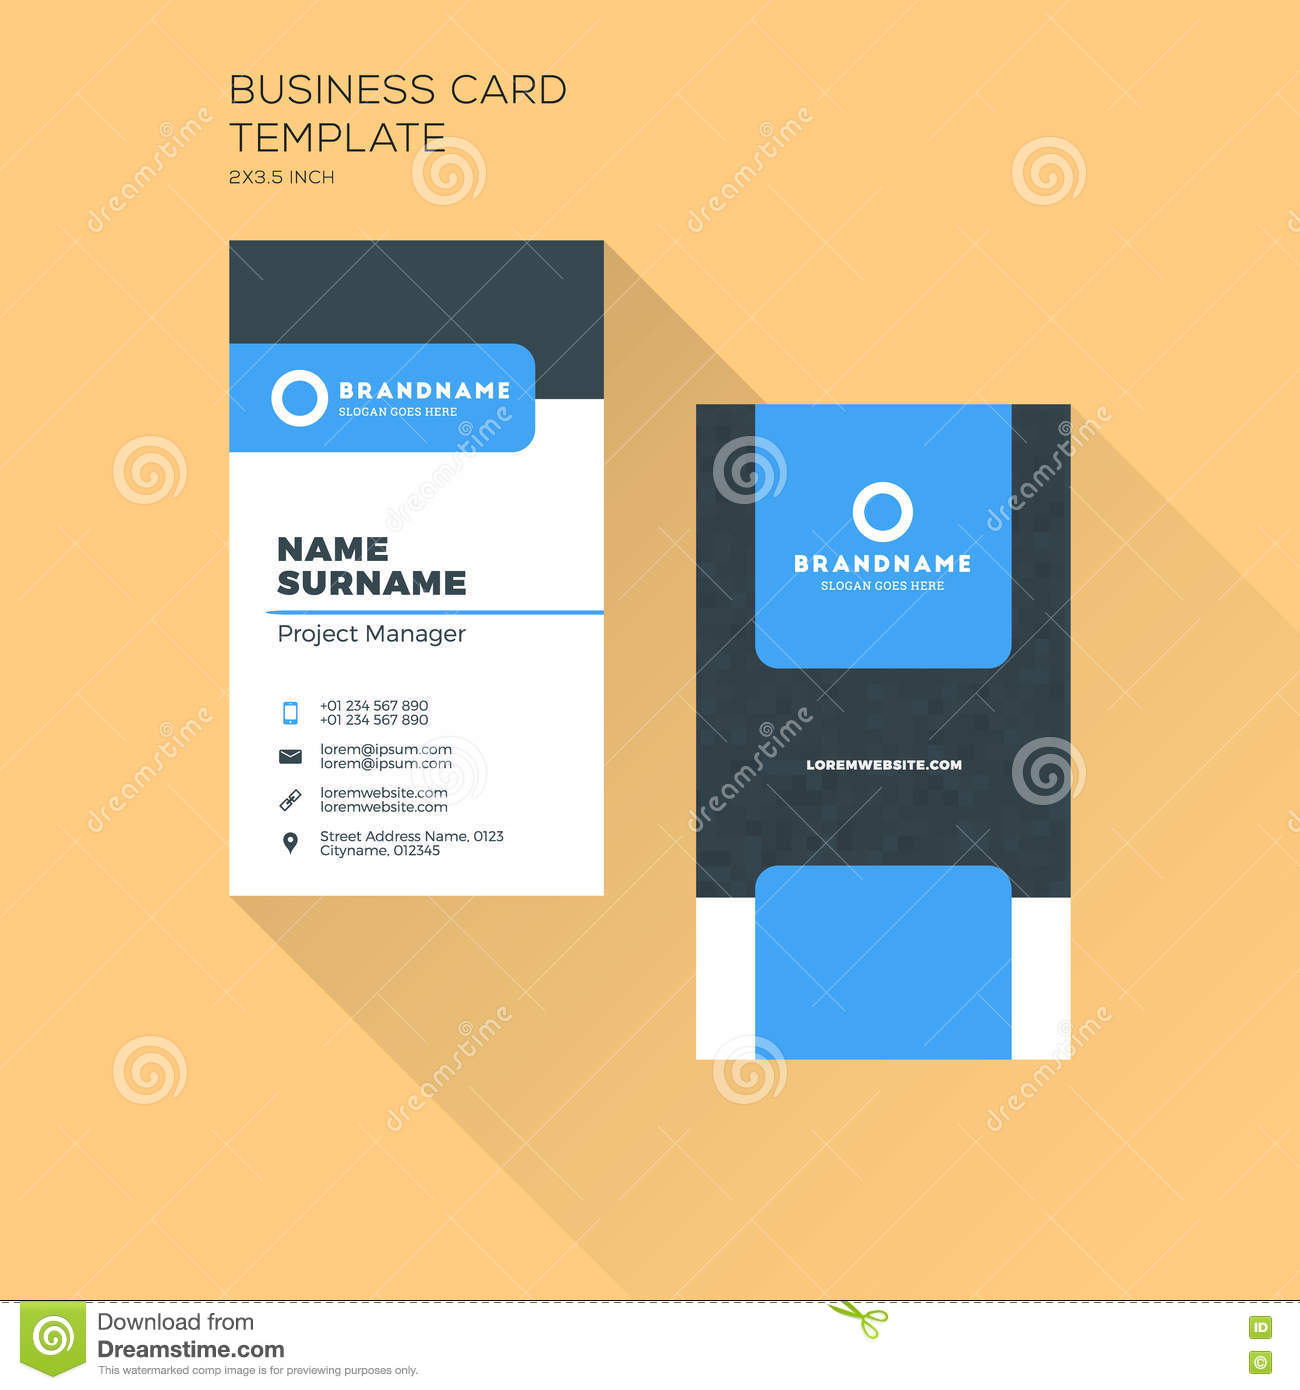 Vertical business card print template personal business card wi download vertical business card print template personal business card wi stock vector illustration of accmission